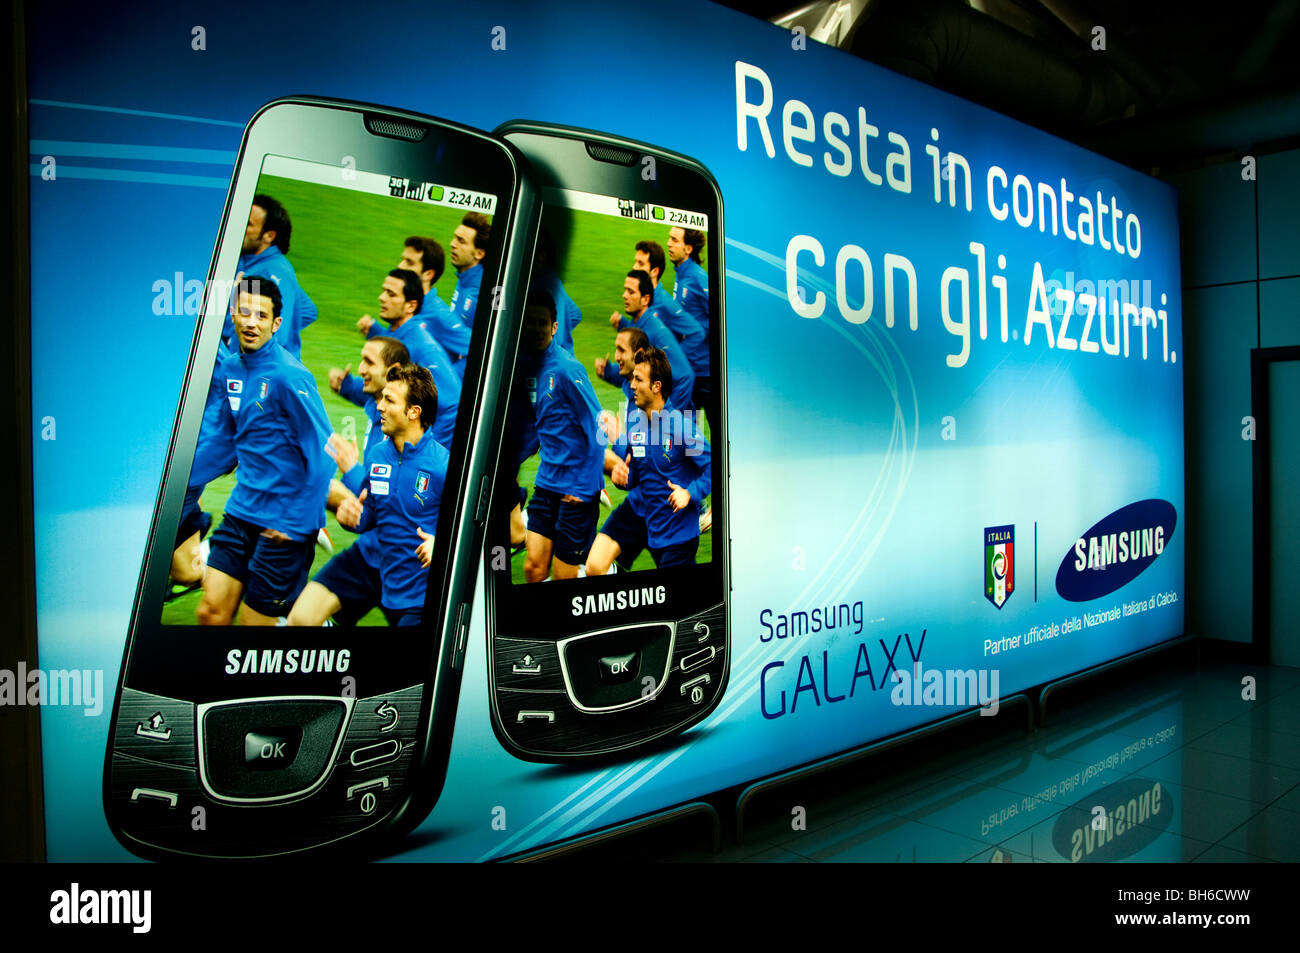 cell cellular phone Soccer Football Samsung Airport Rome Italy telephone - Stock Image